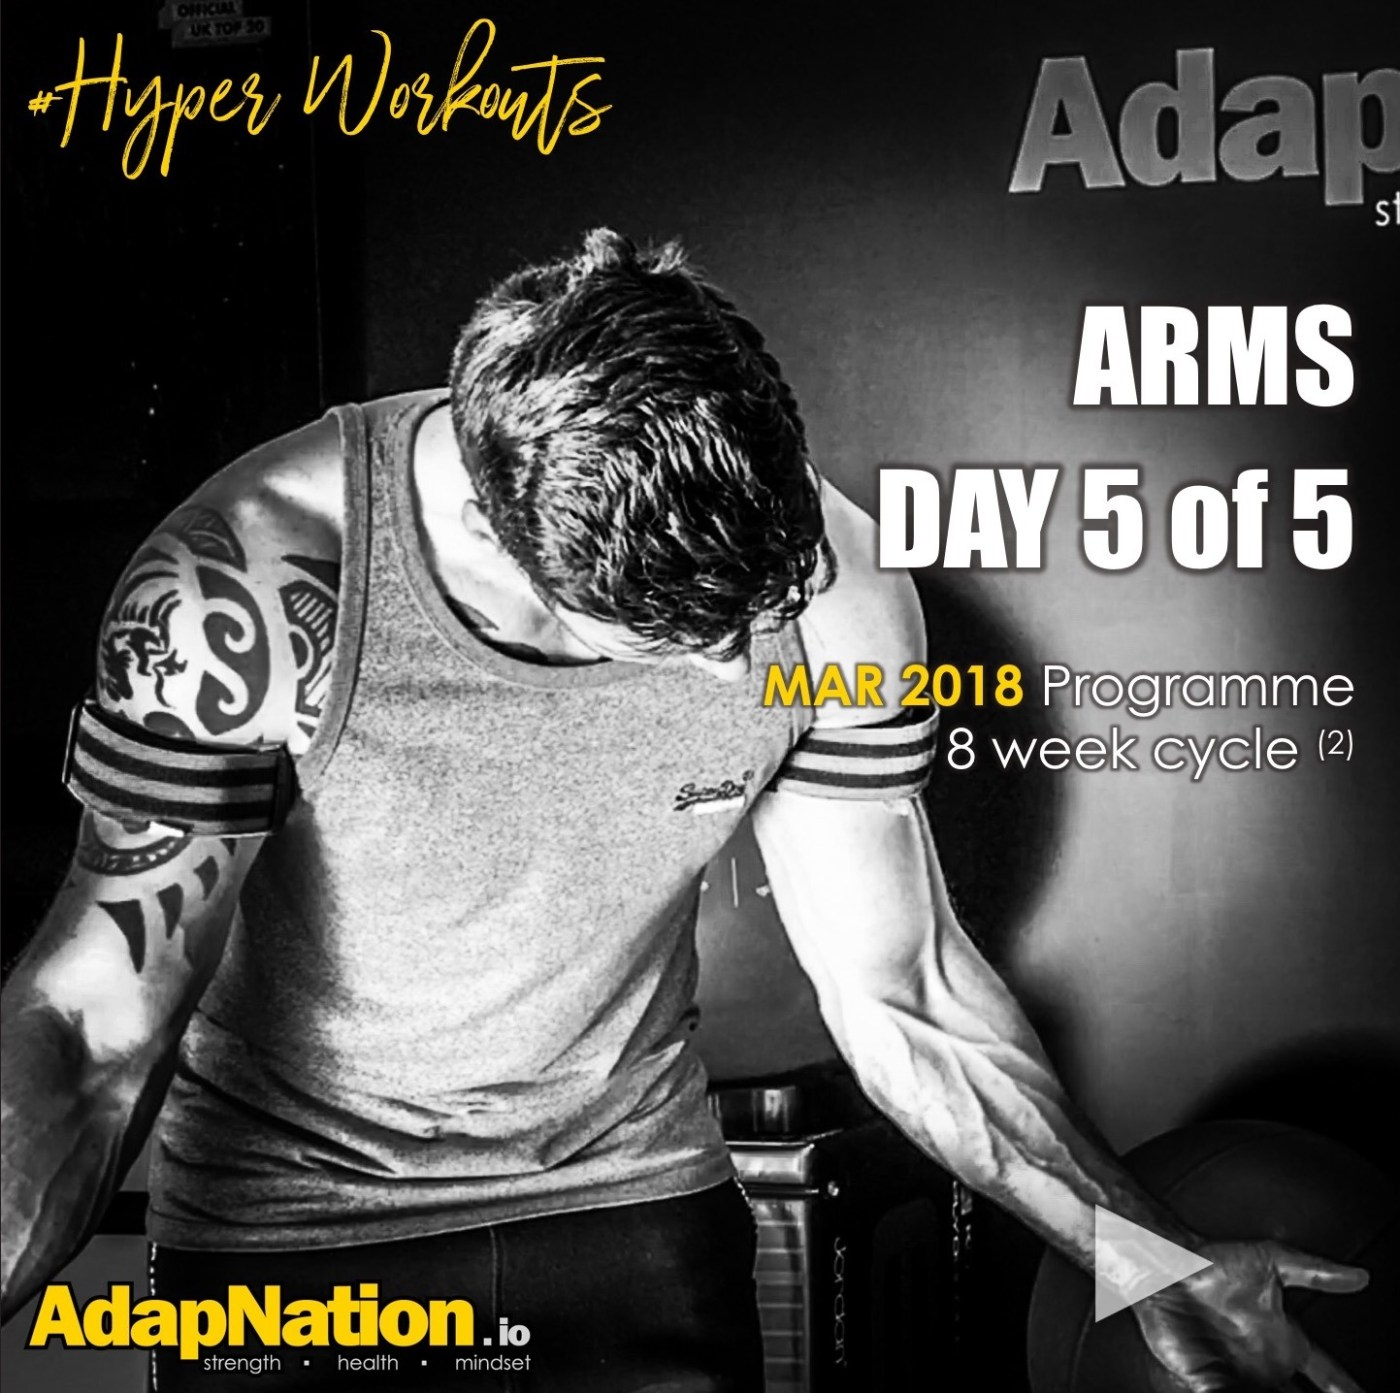 MAR-18 #HyperWorkouts - Day 5/5 - Arms Day